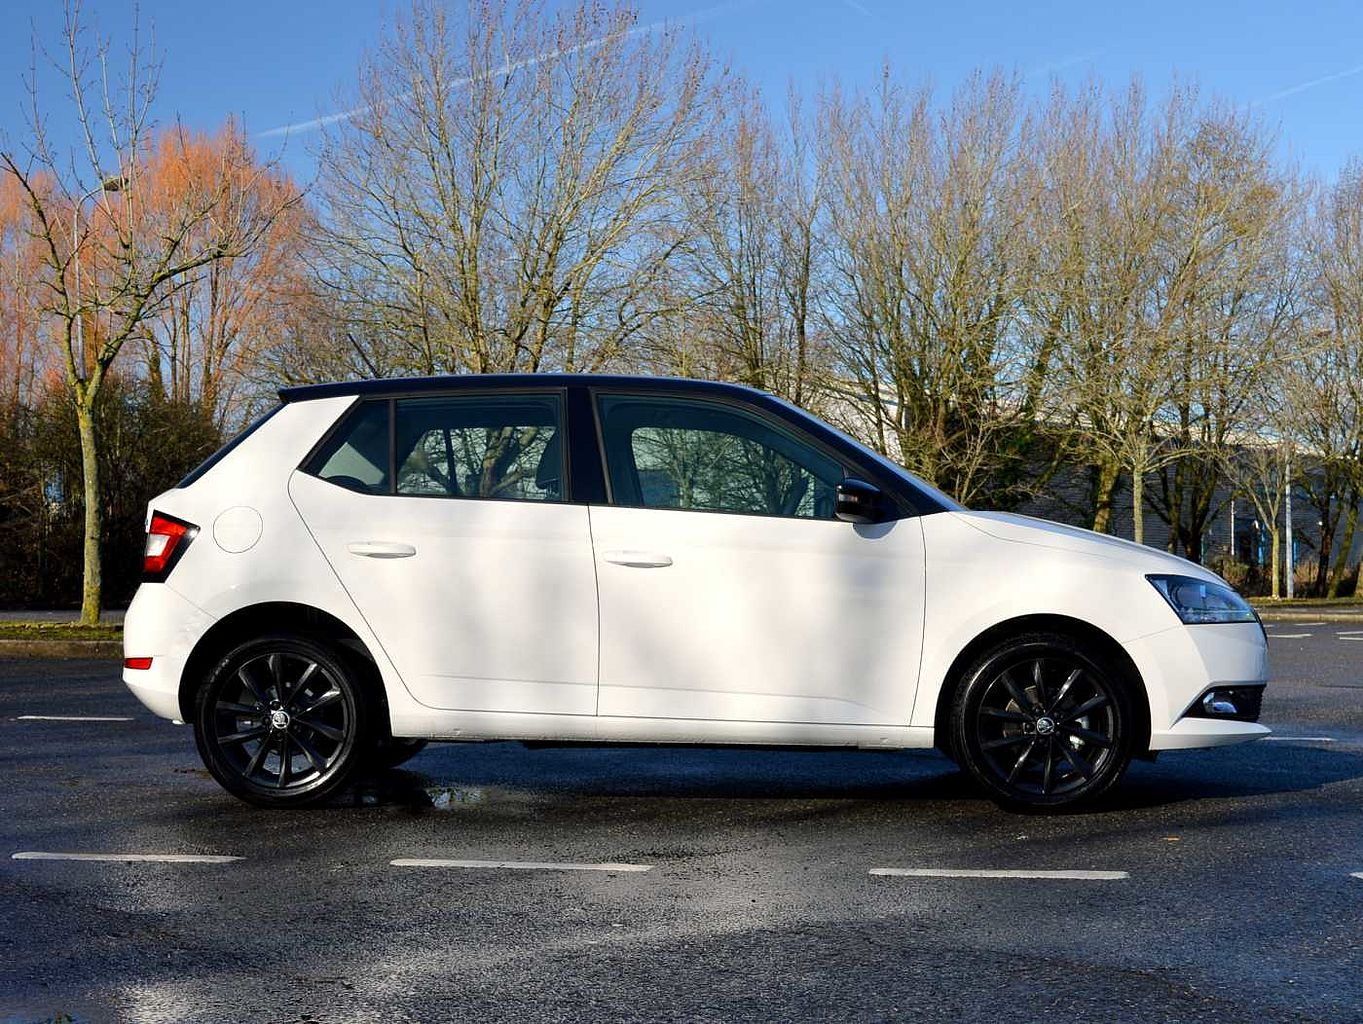 ŠKODA Fabia 1.0 MPI (75ps) Colour Edition (s/s) 5-Dr HB